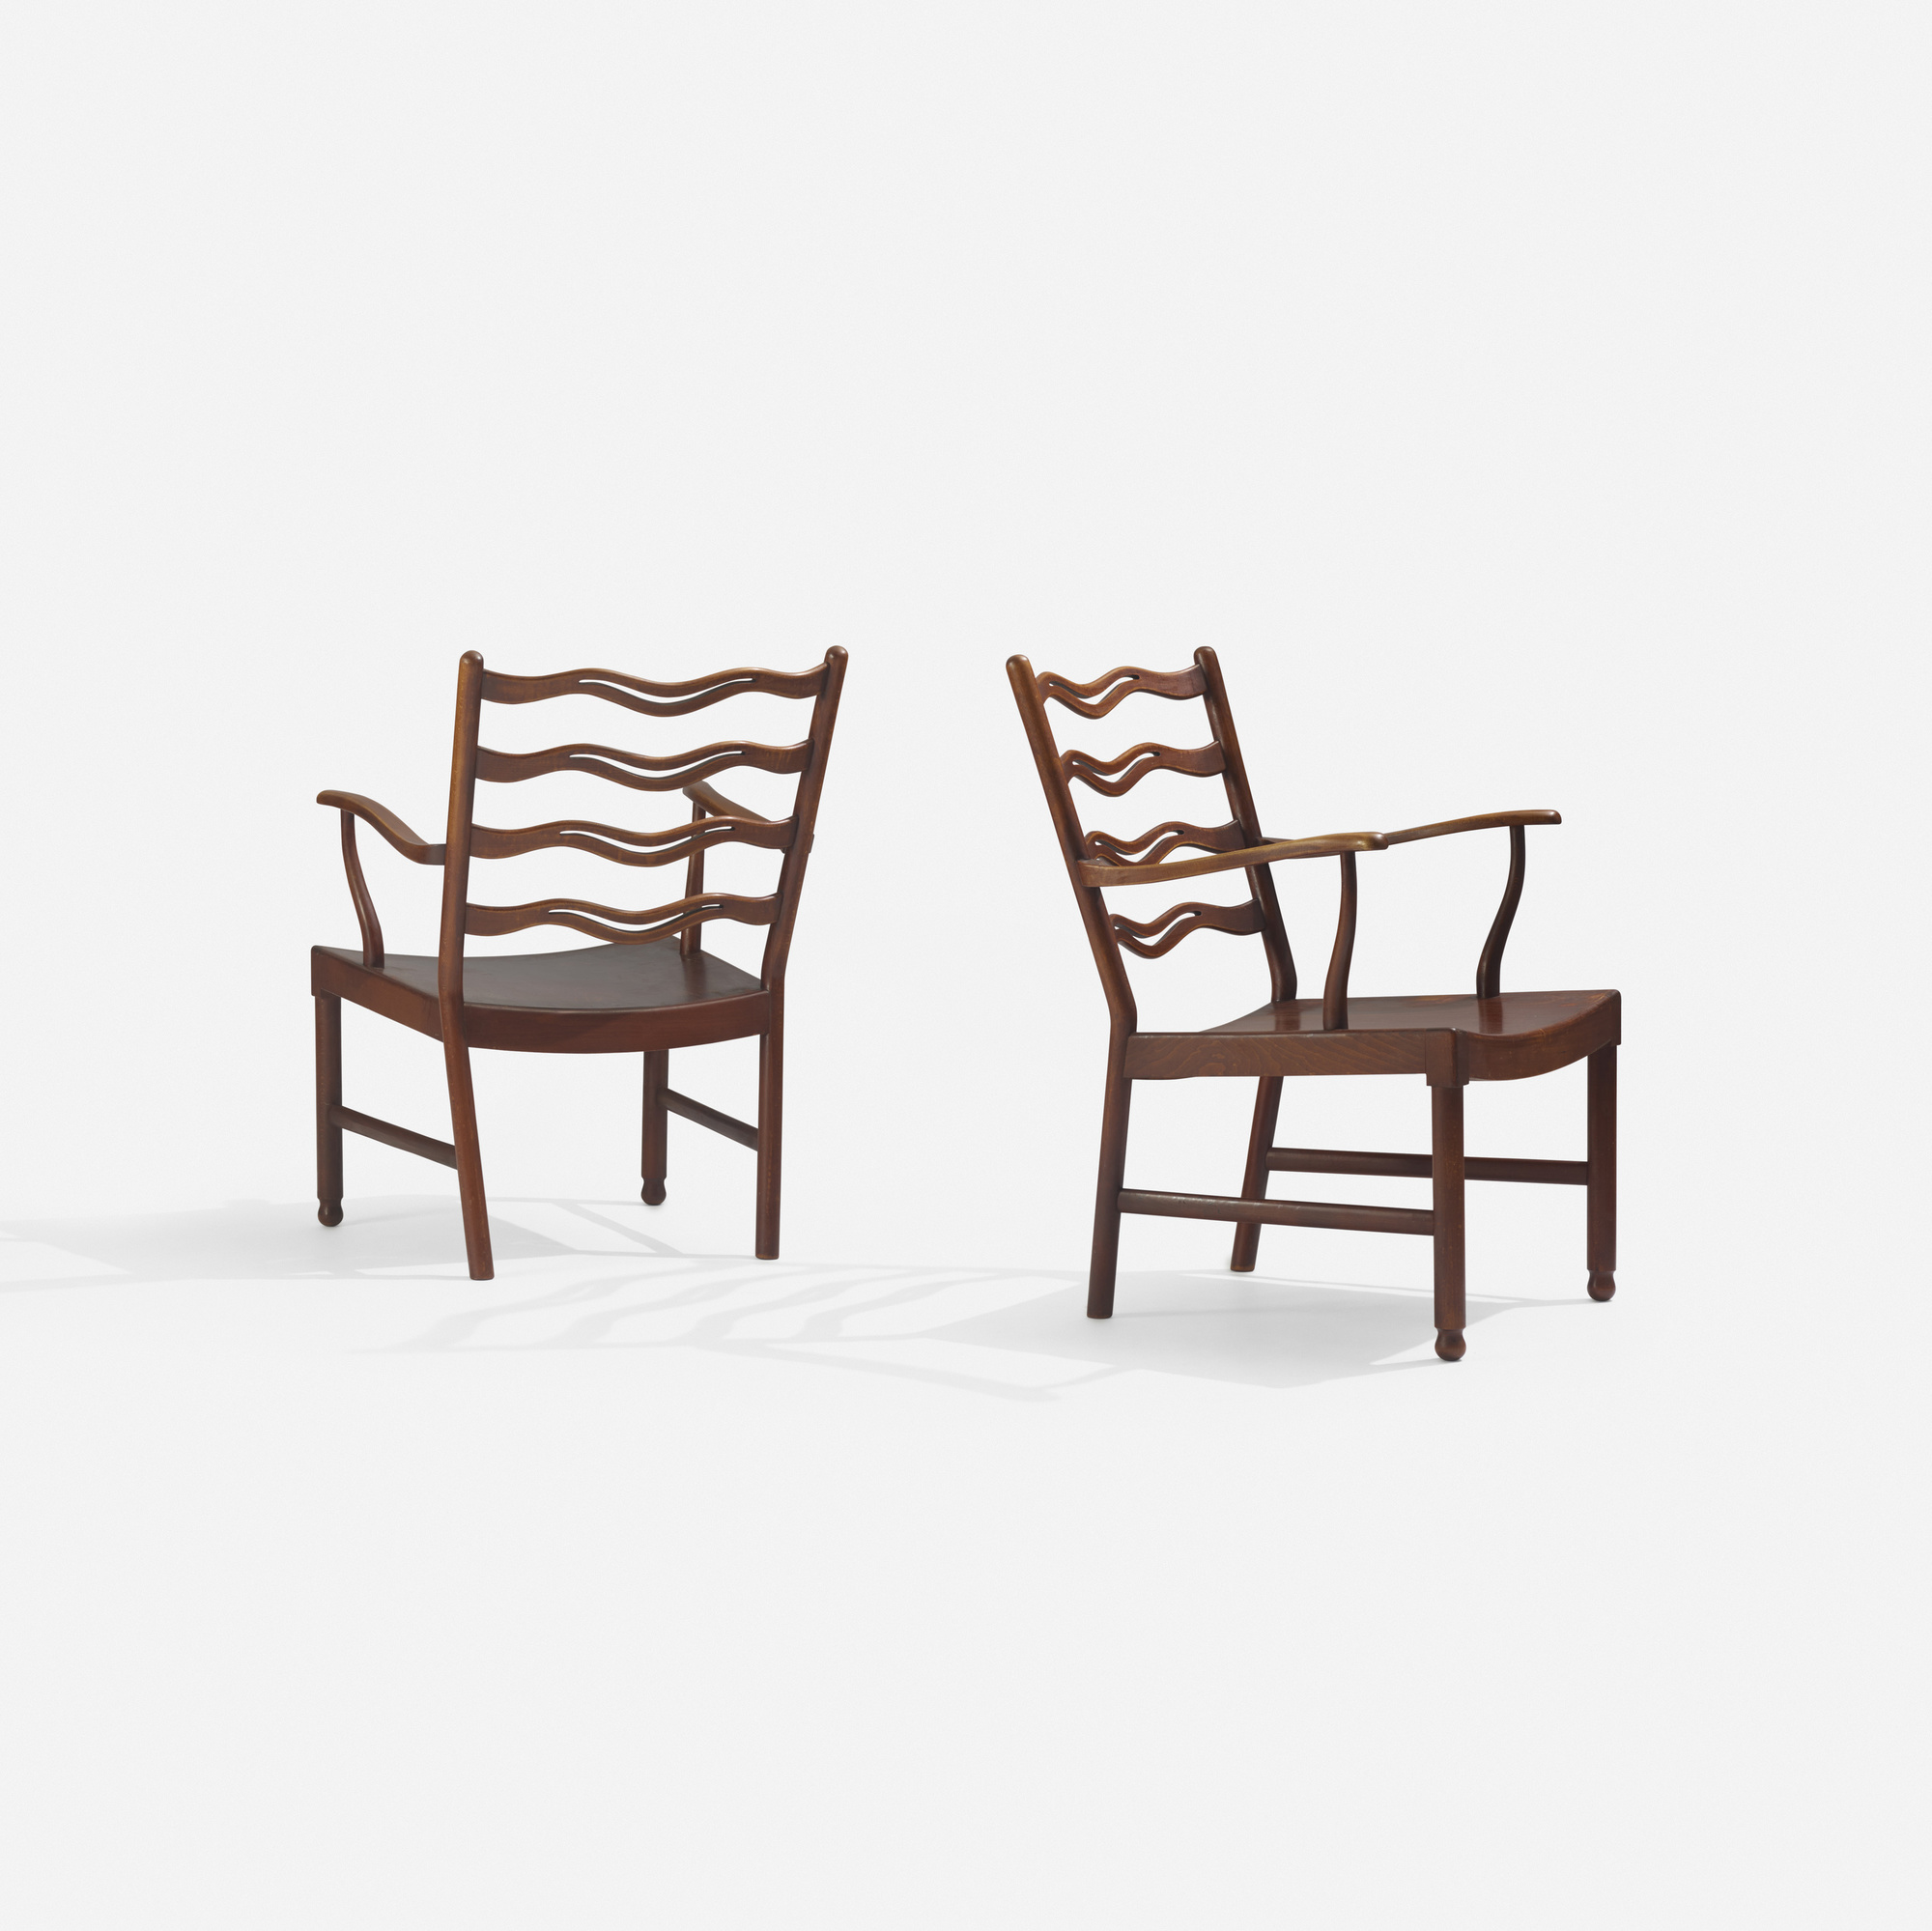 269: Ole Wanscher / lounge chairs, pair (1 of 2)